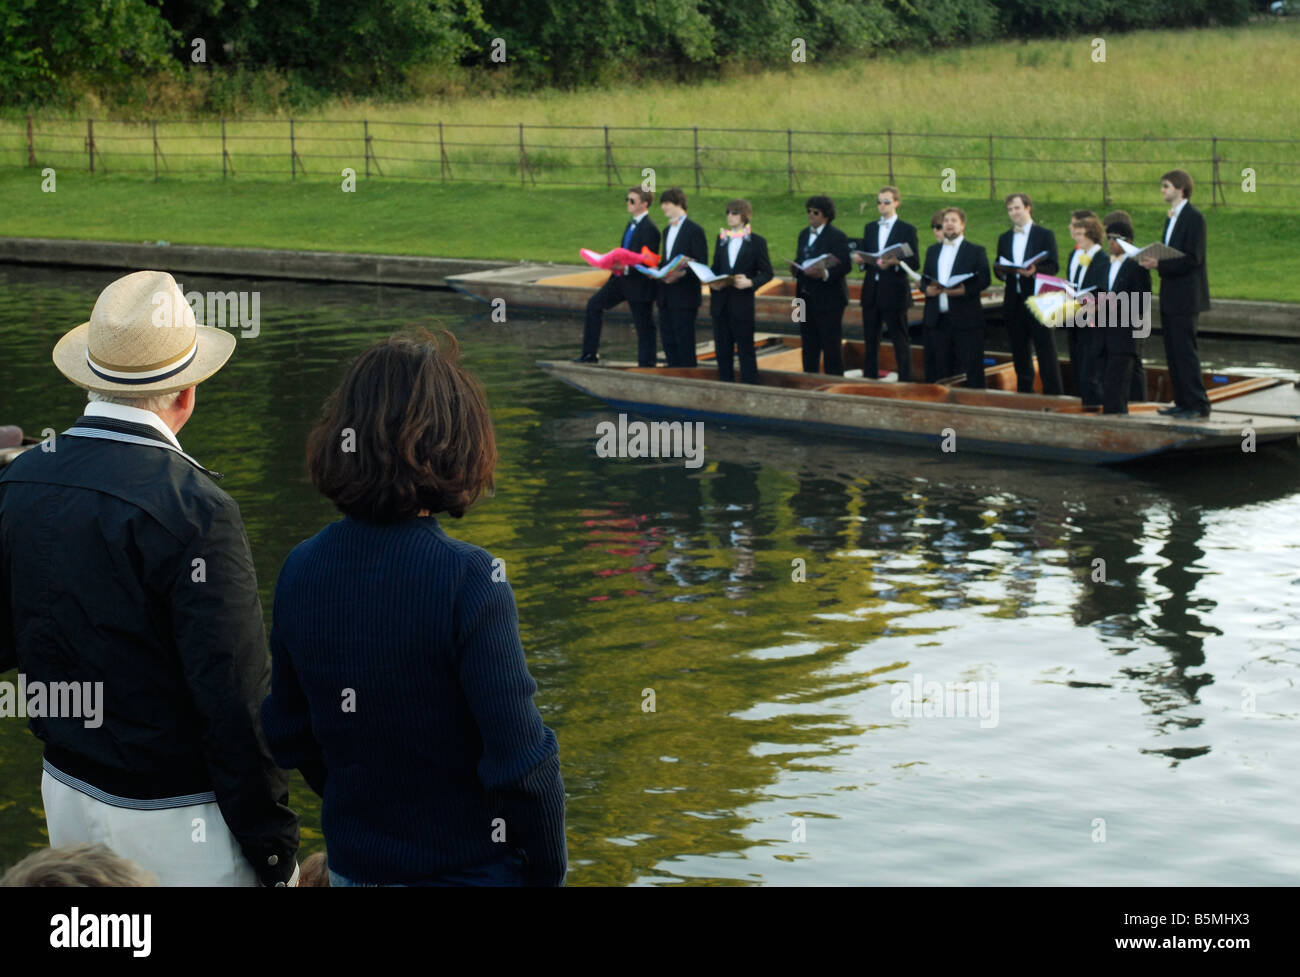 Couple admiring King's College Choral Scholars singing from punts on the River Cam, Cambridge - Stock Image